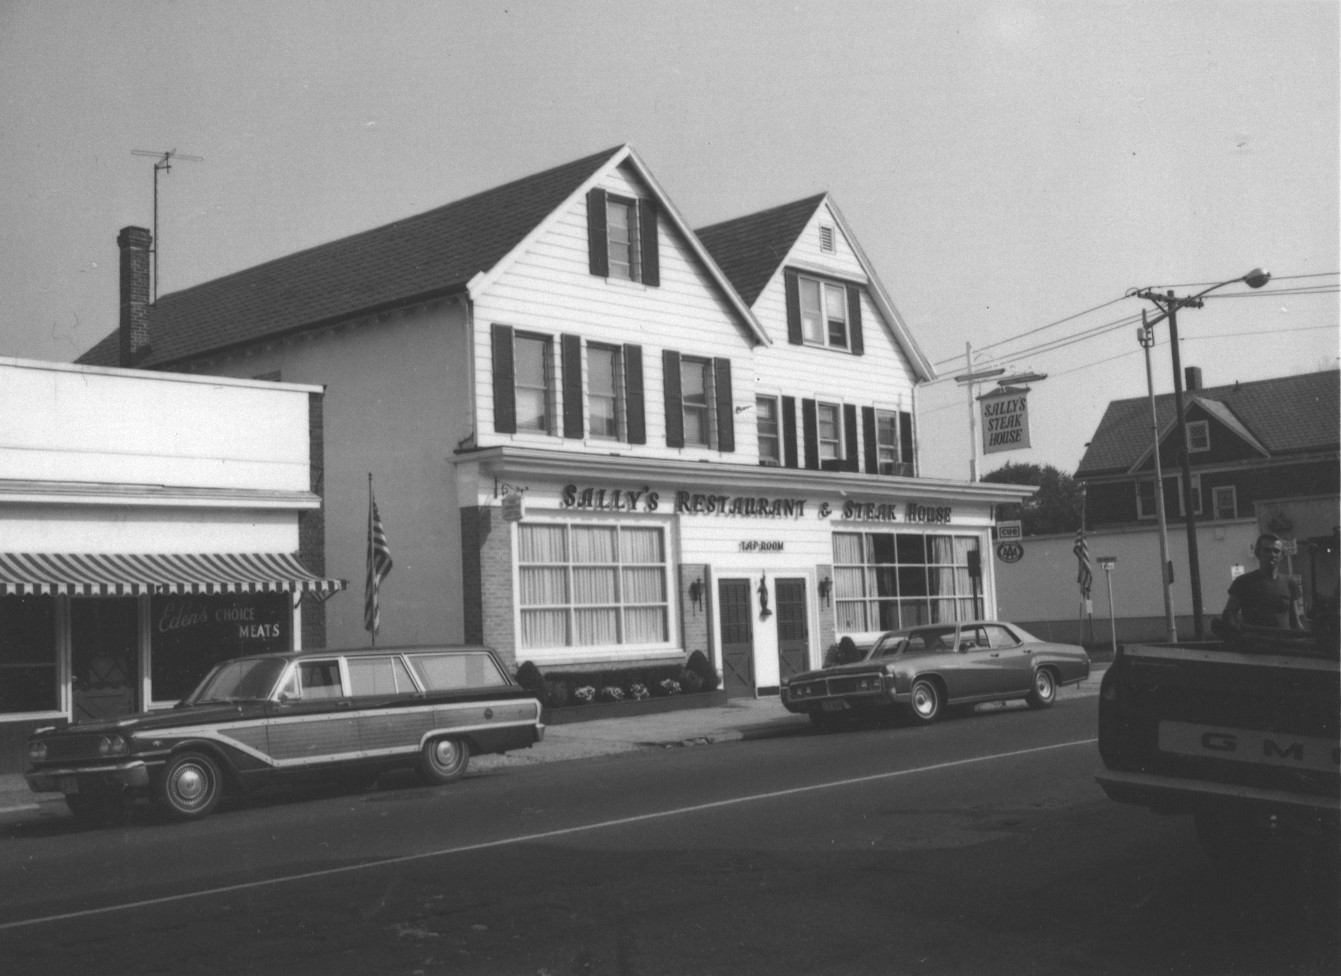 Sally's, circa the 1970s